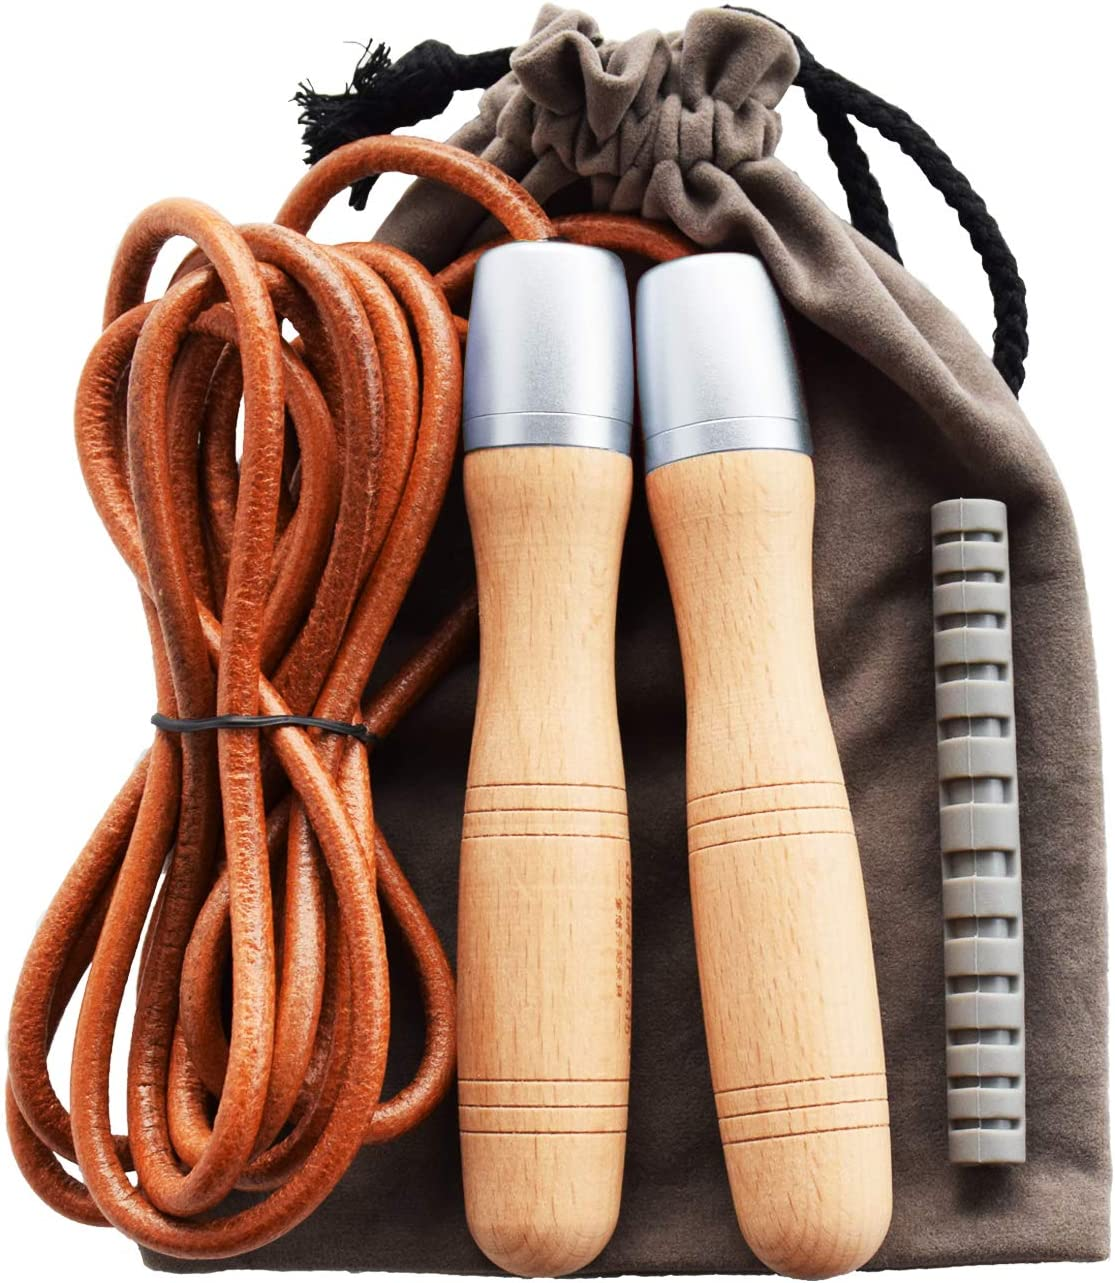 Ranking New sales TOP15 Ahomie Leather Jump Rope Adjustable wit Jumping Skipping Ropes